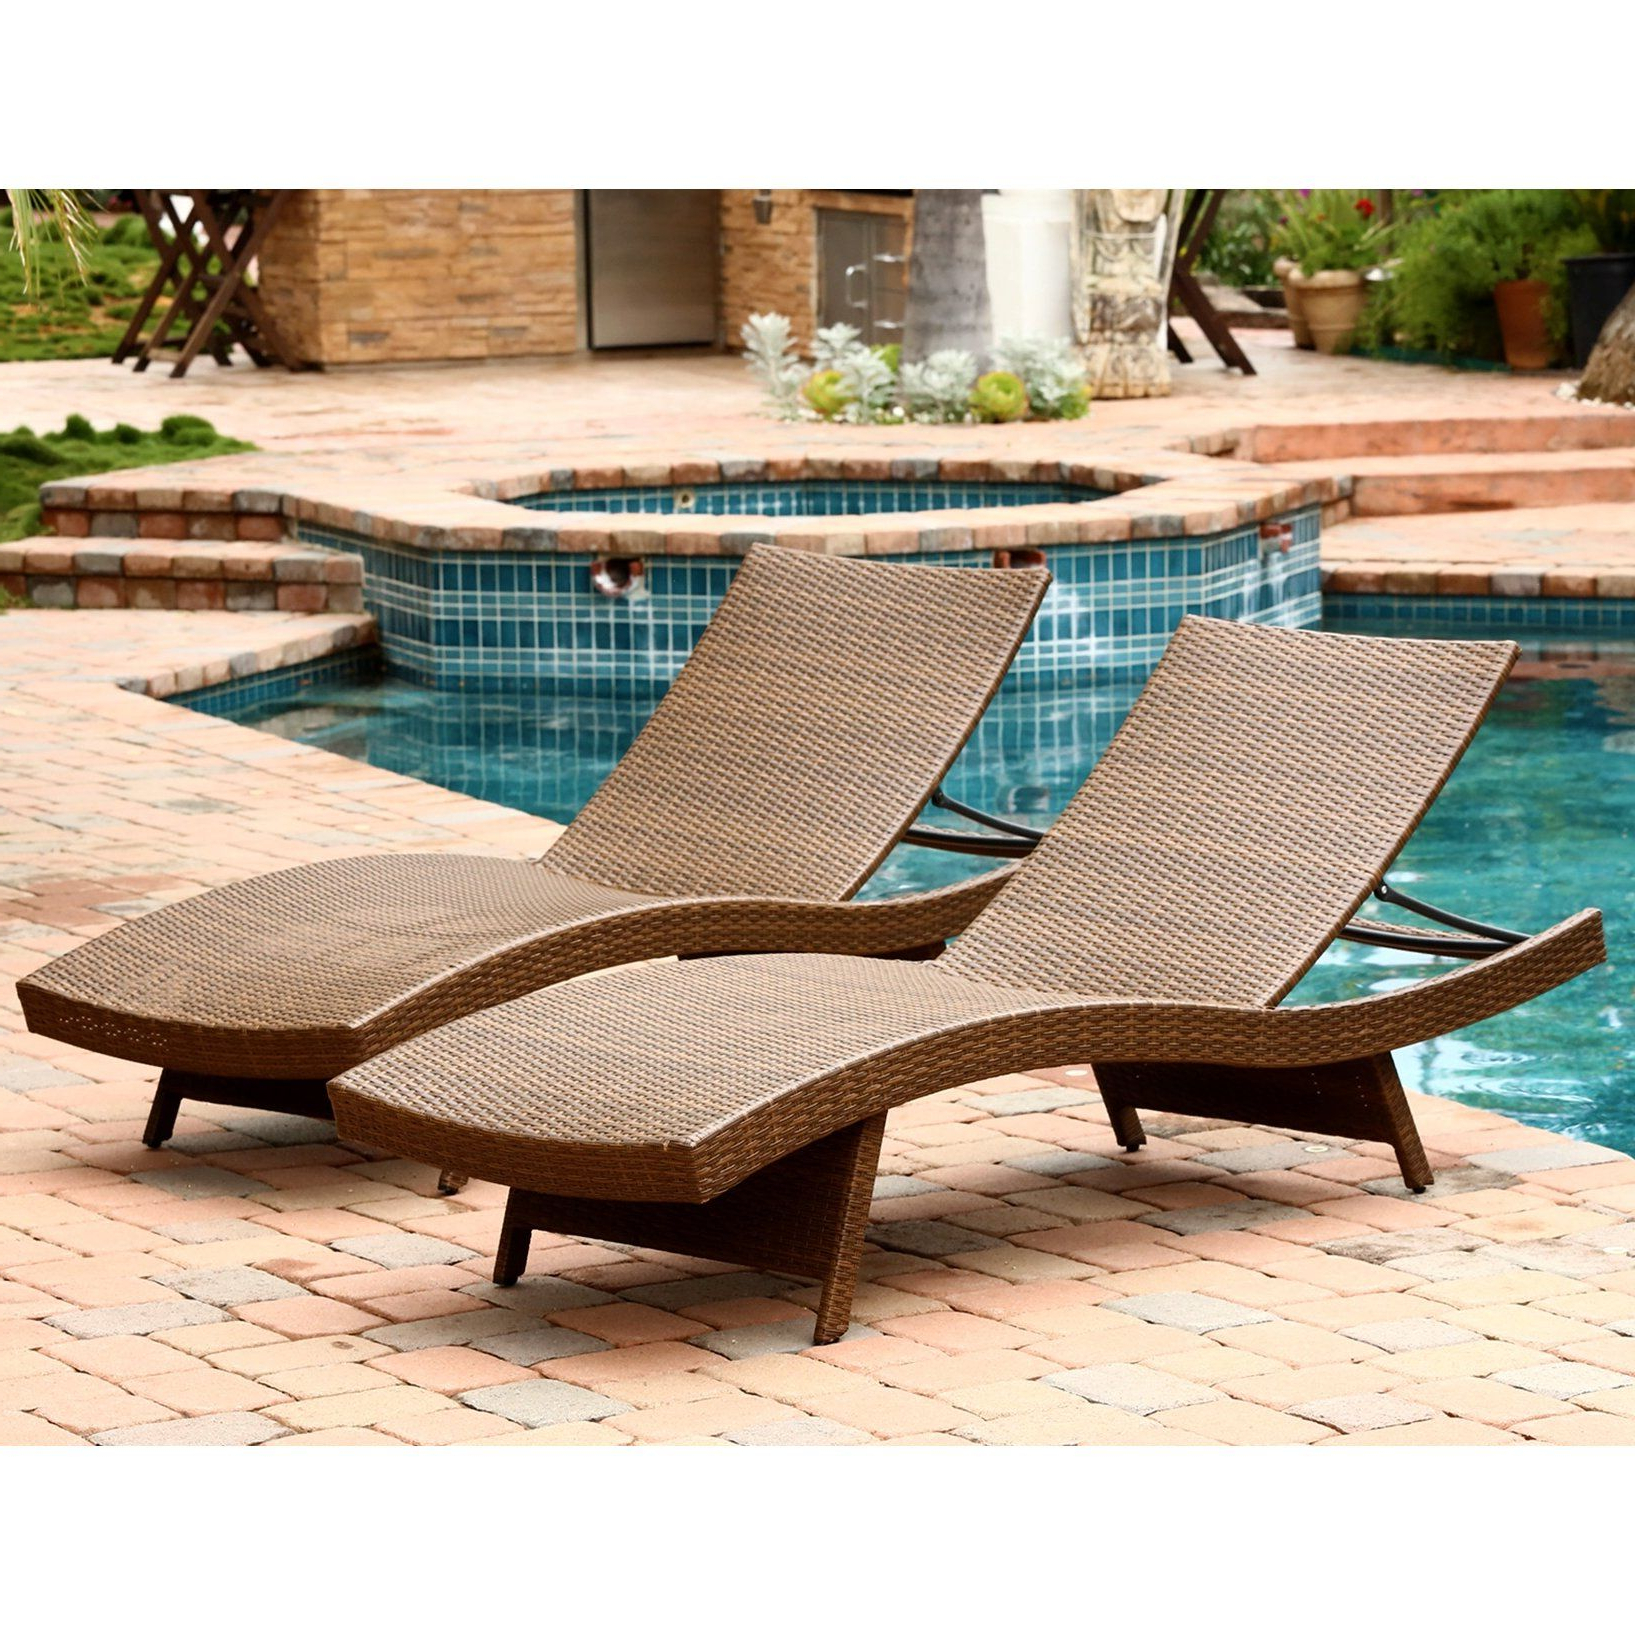 Brayden Studio® Quinn Patio Lounger (View 17 of 20)